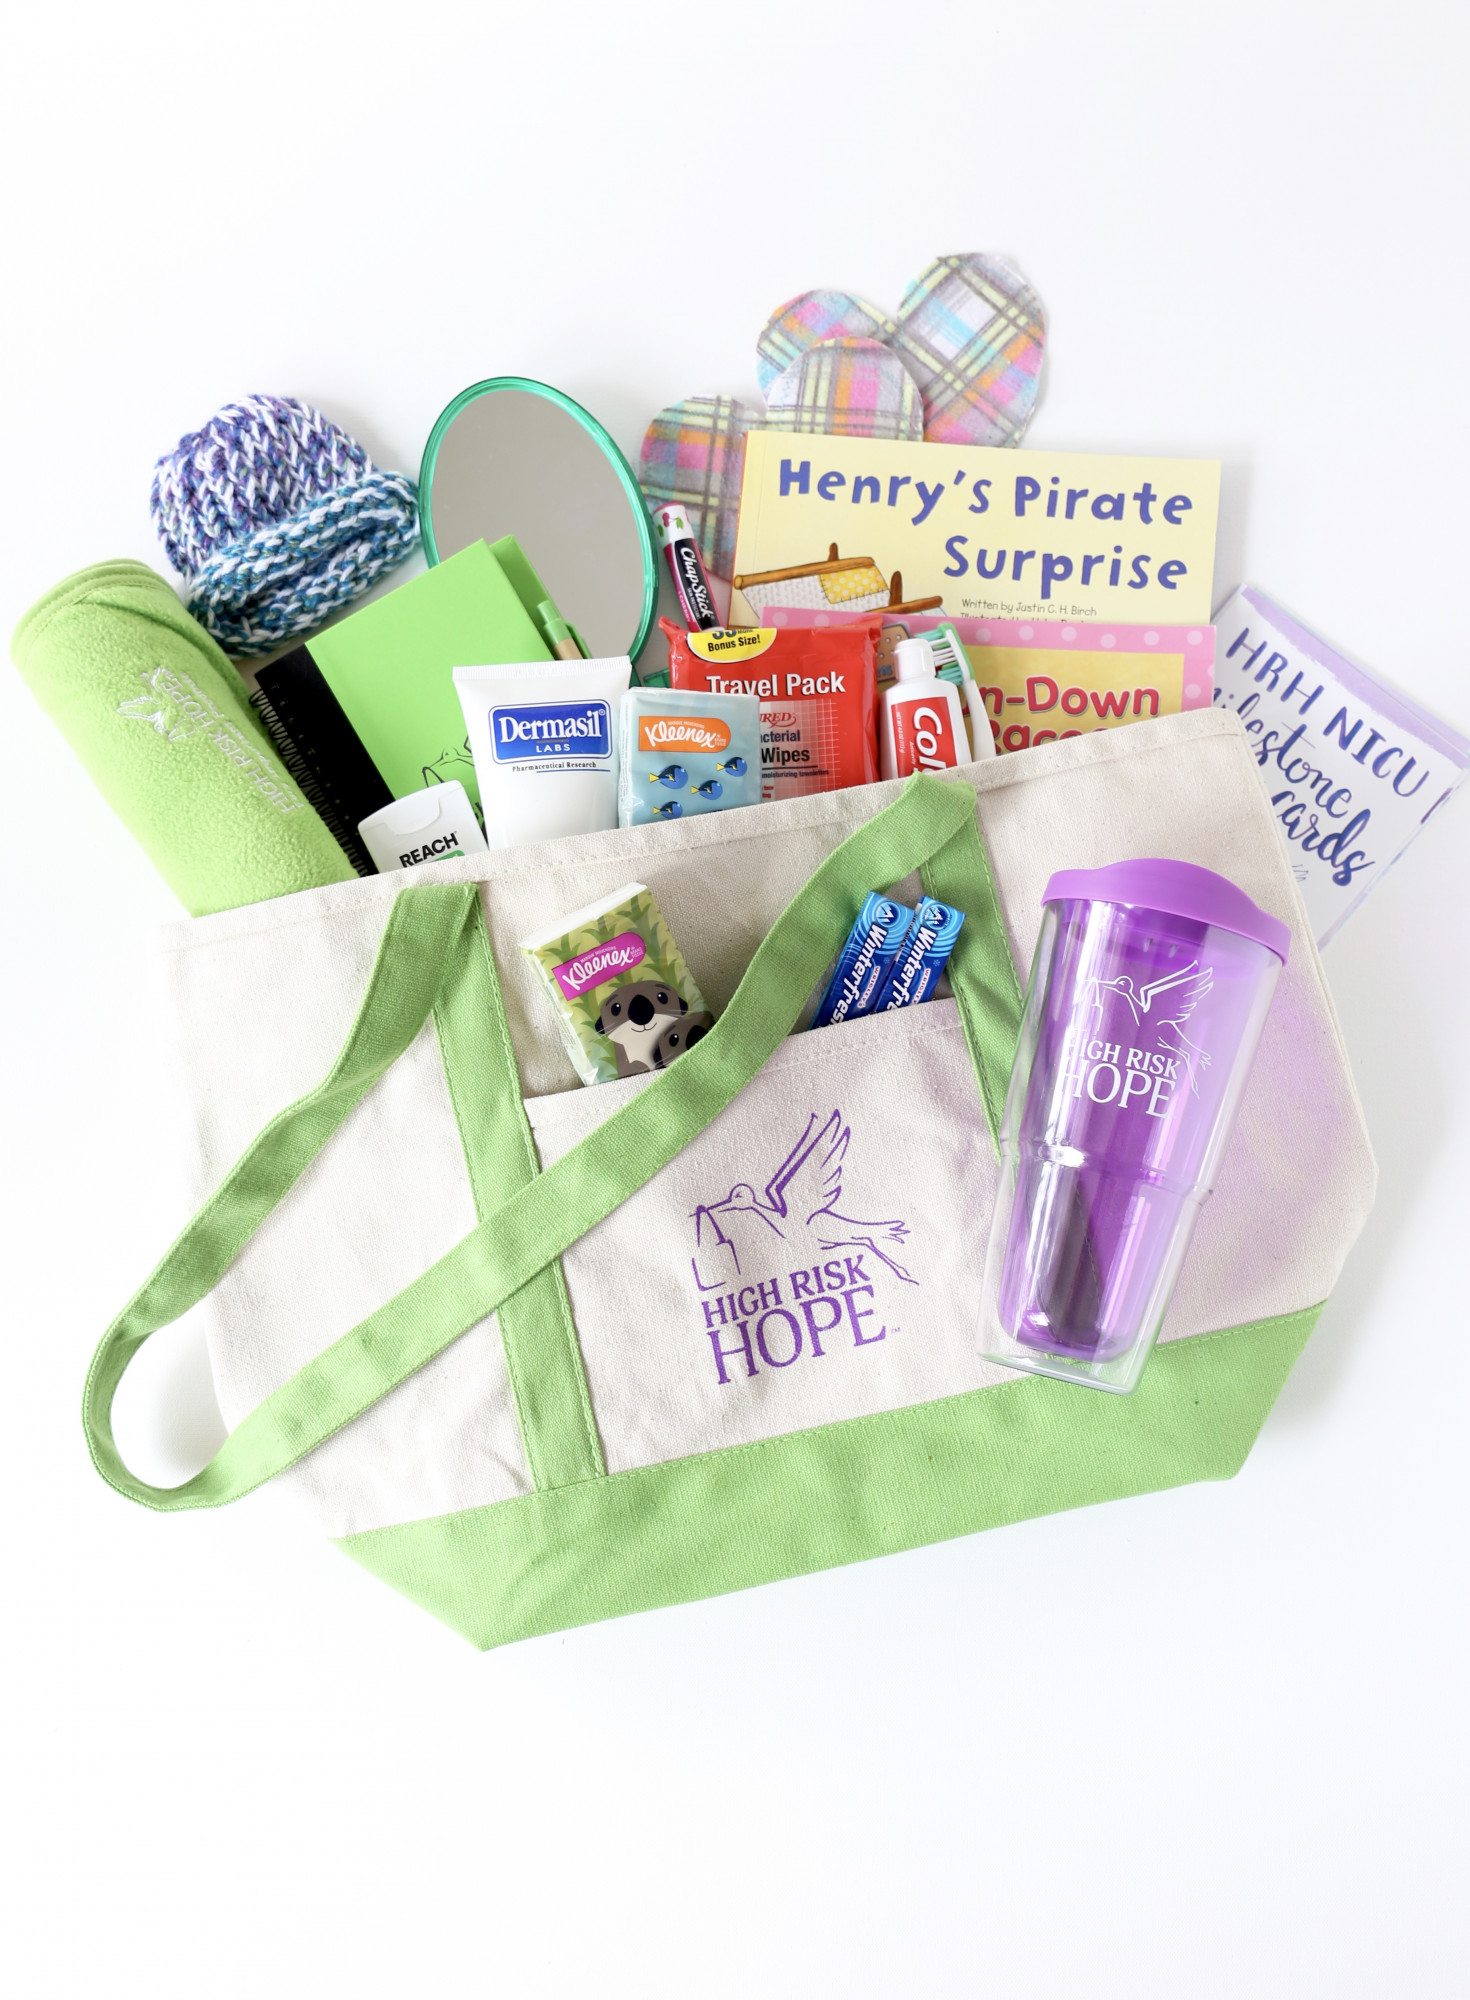 7 Thoughtful Gifts for Preemie Moms